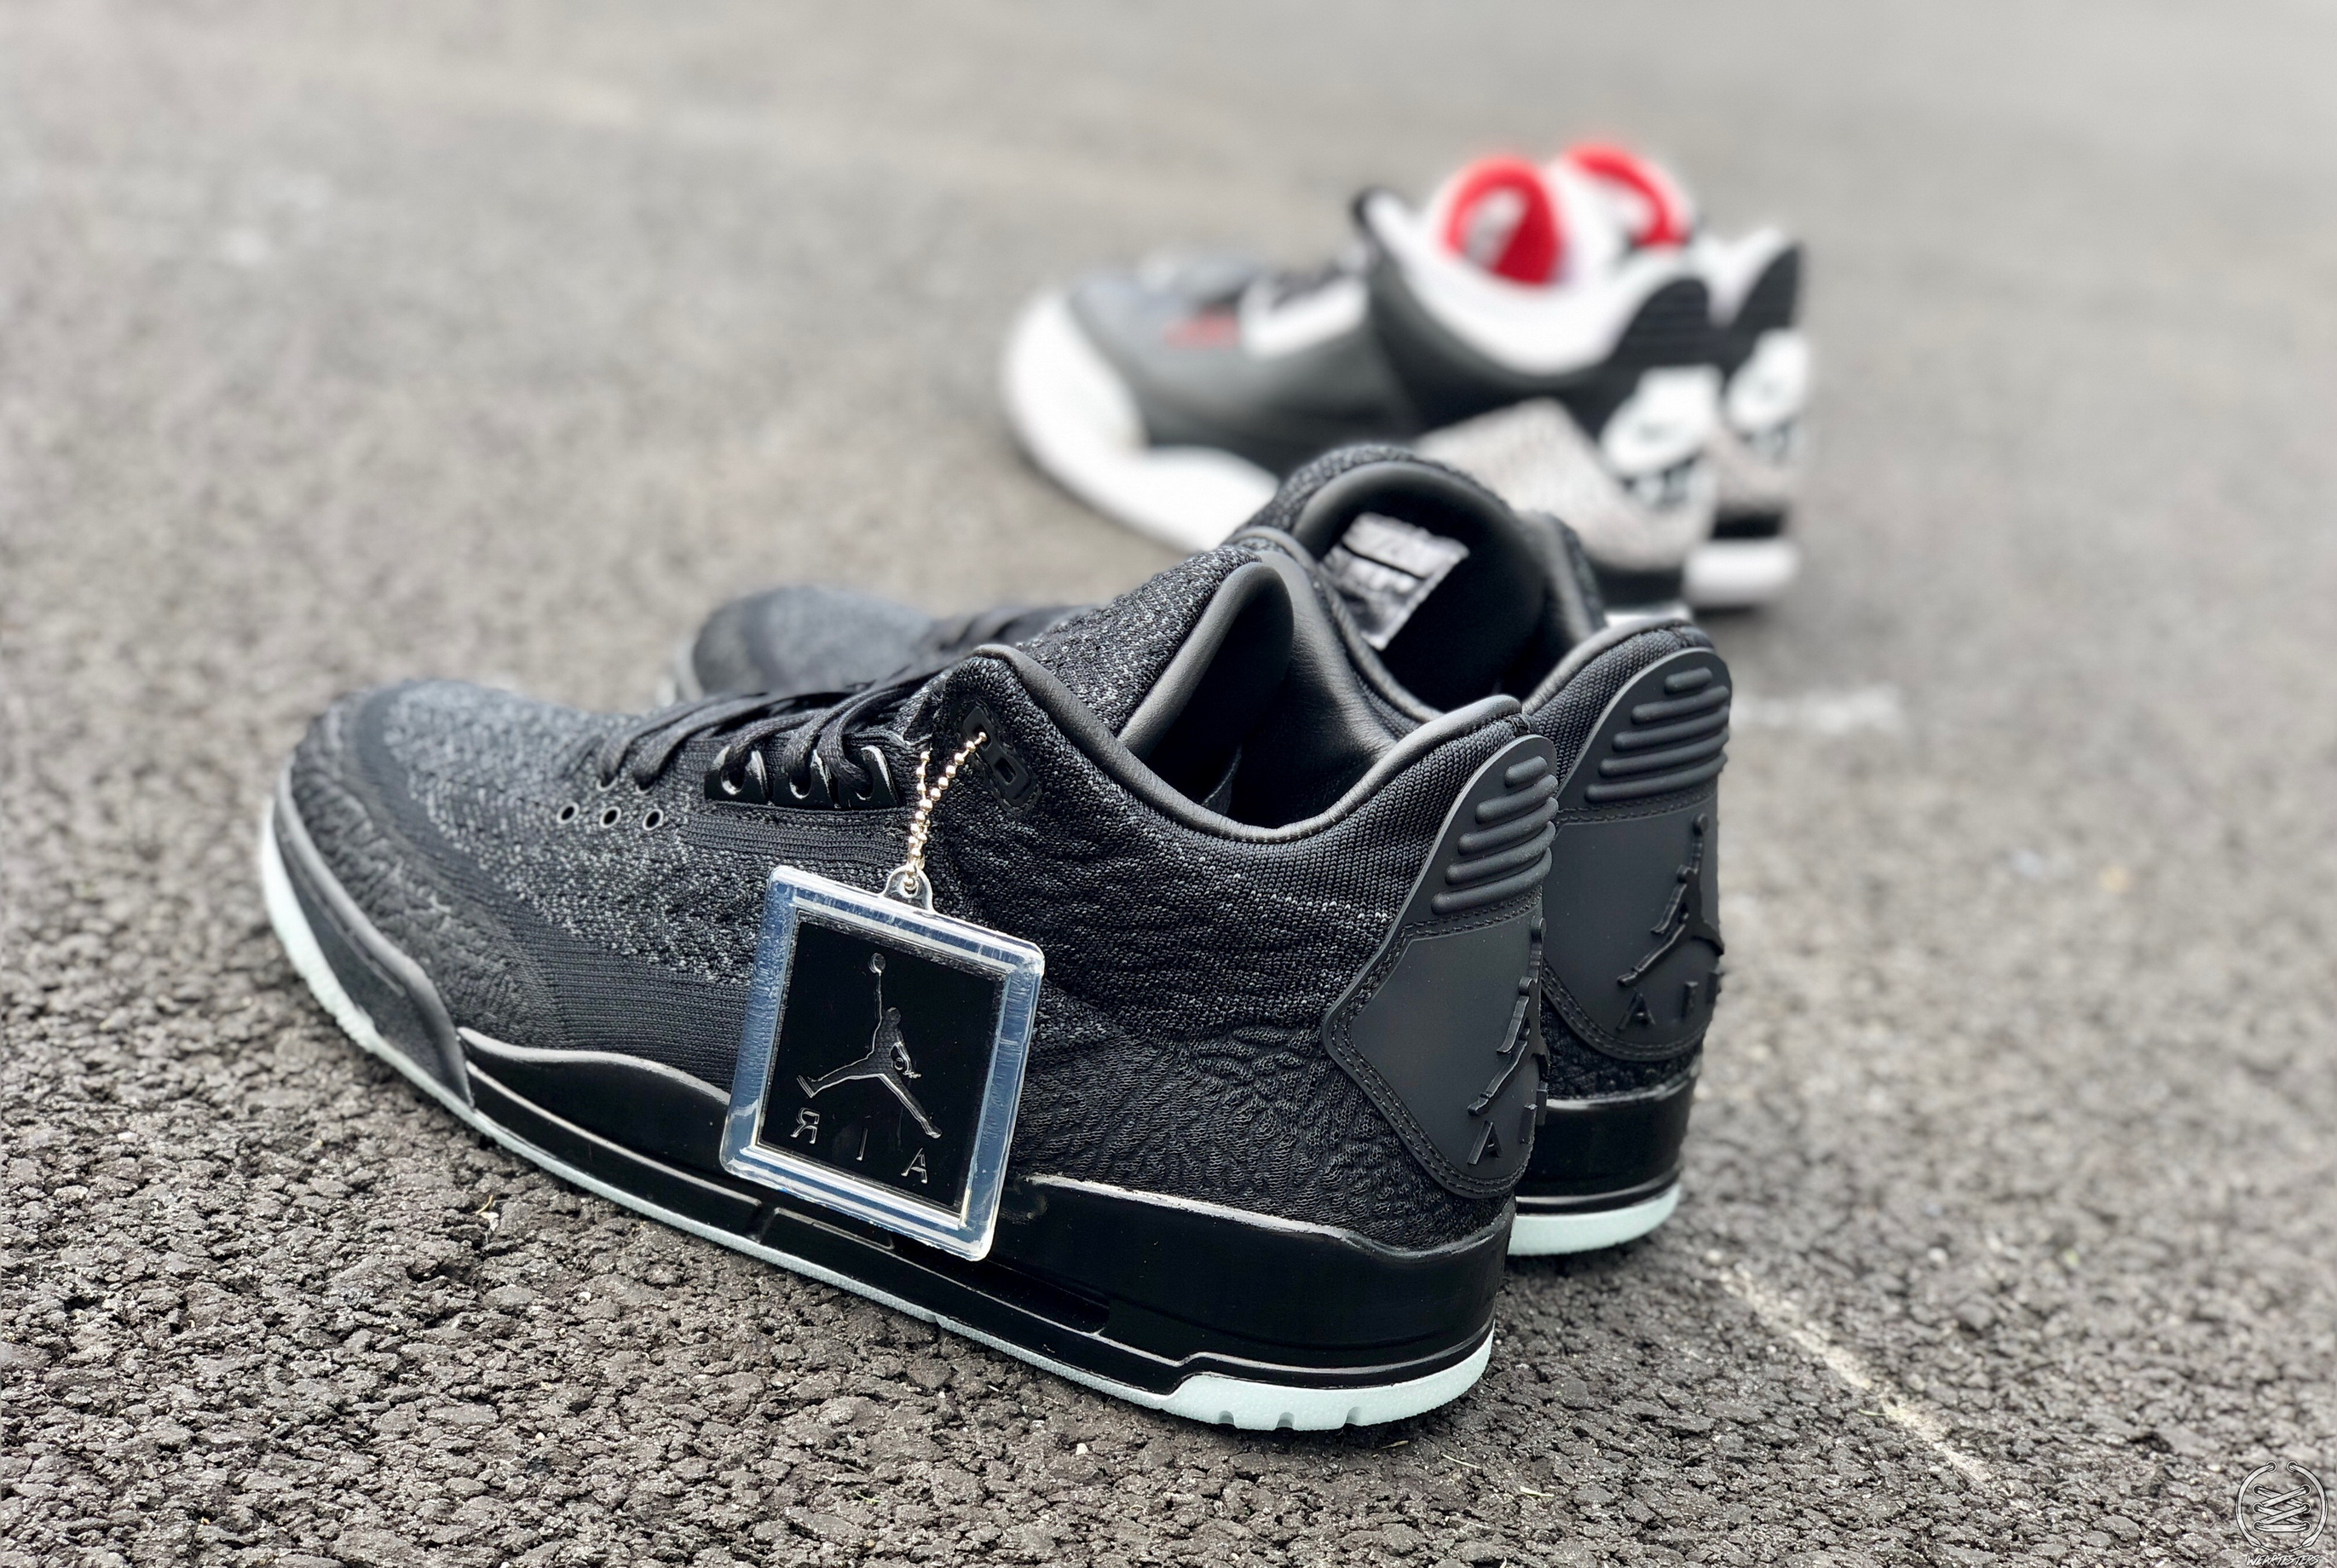 on sale 02411 0a8d8 Air Jordan 3 Flyknit 'Black/Anthracite' Review | Stanley T ...